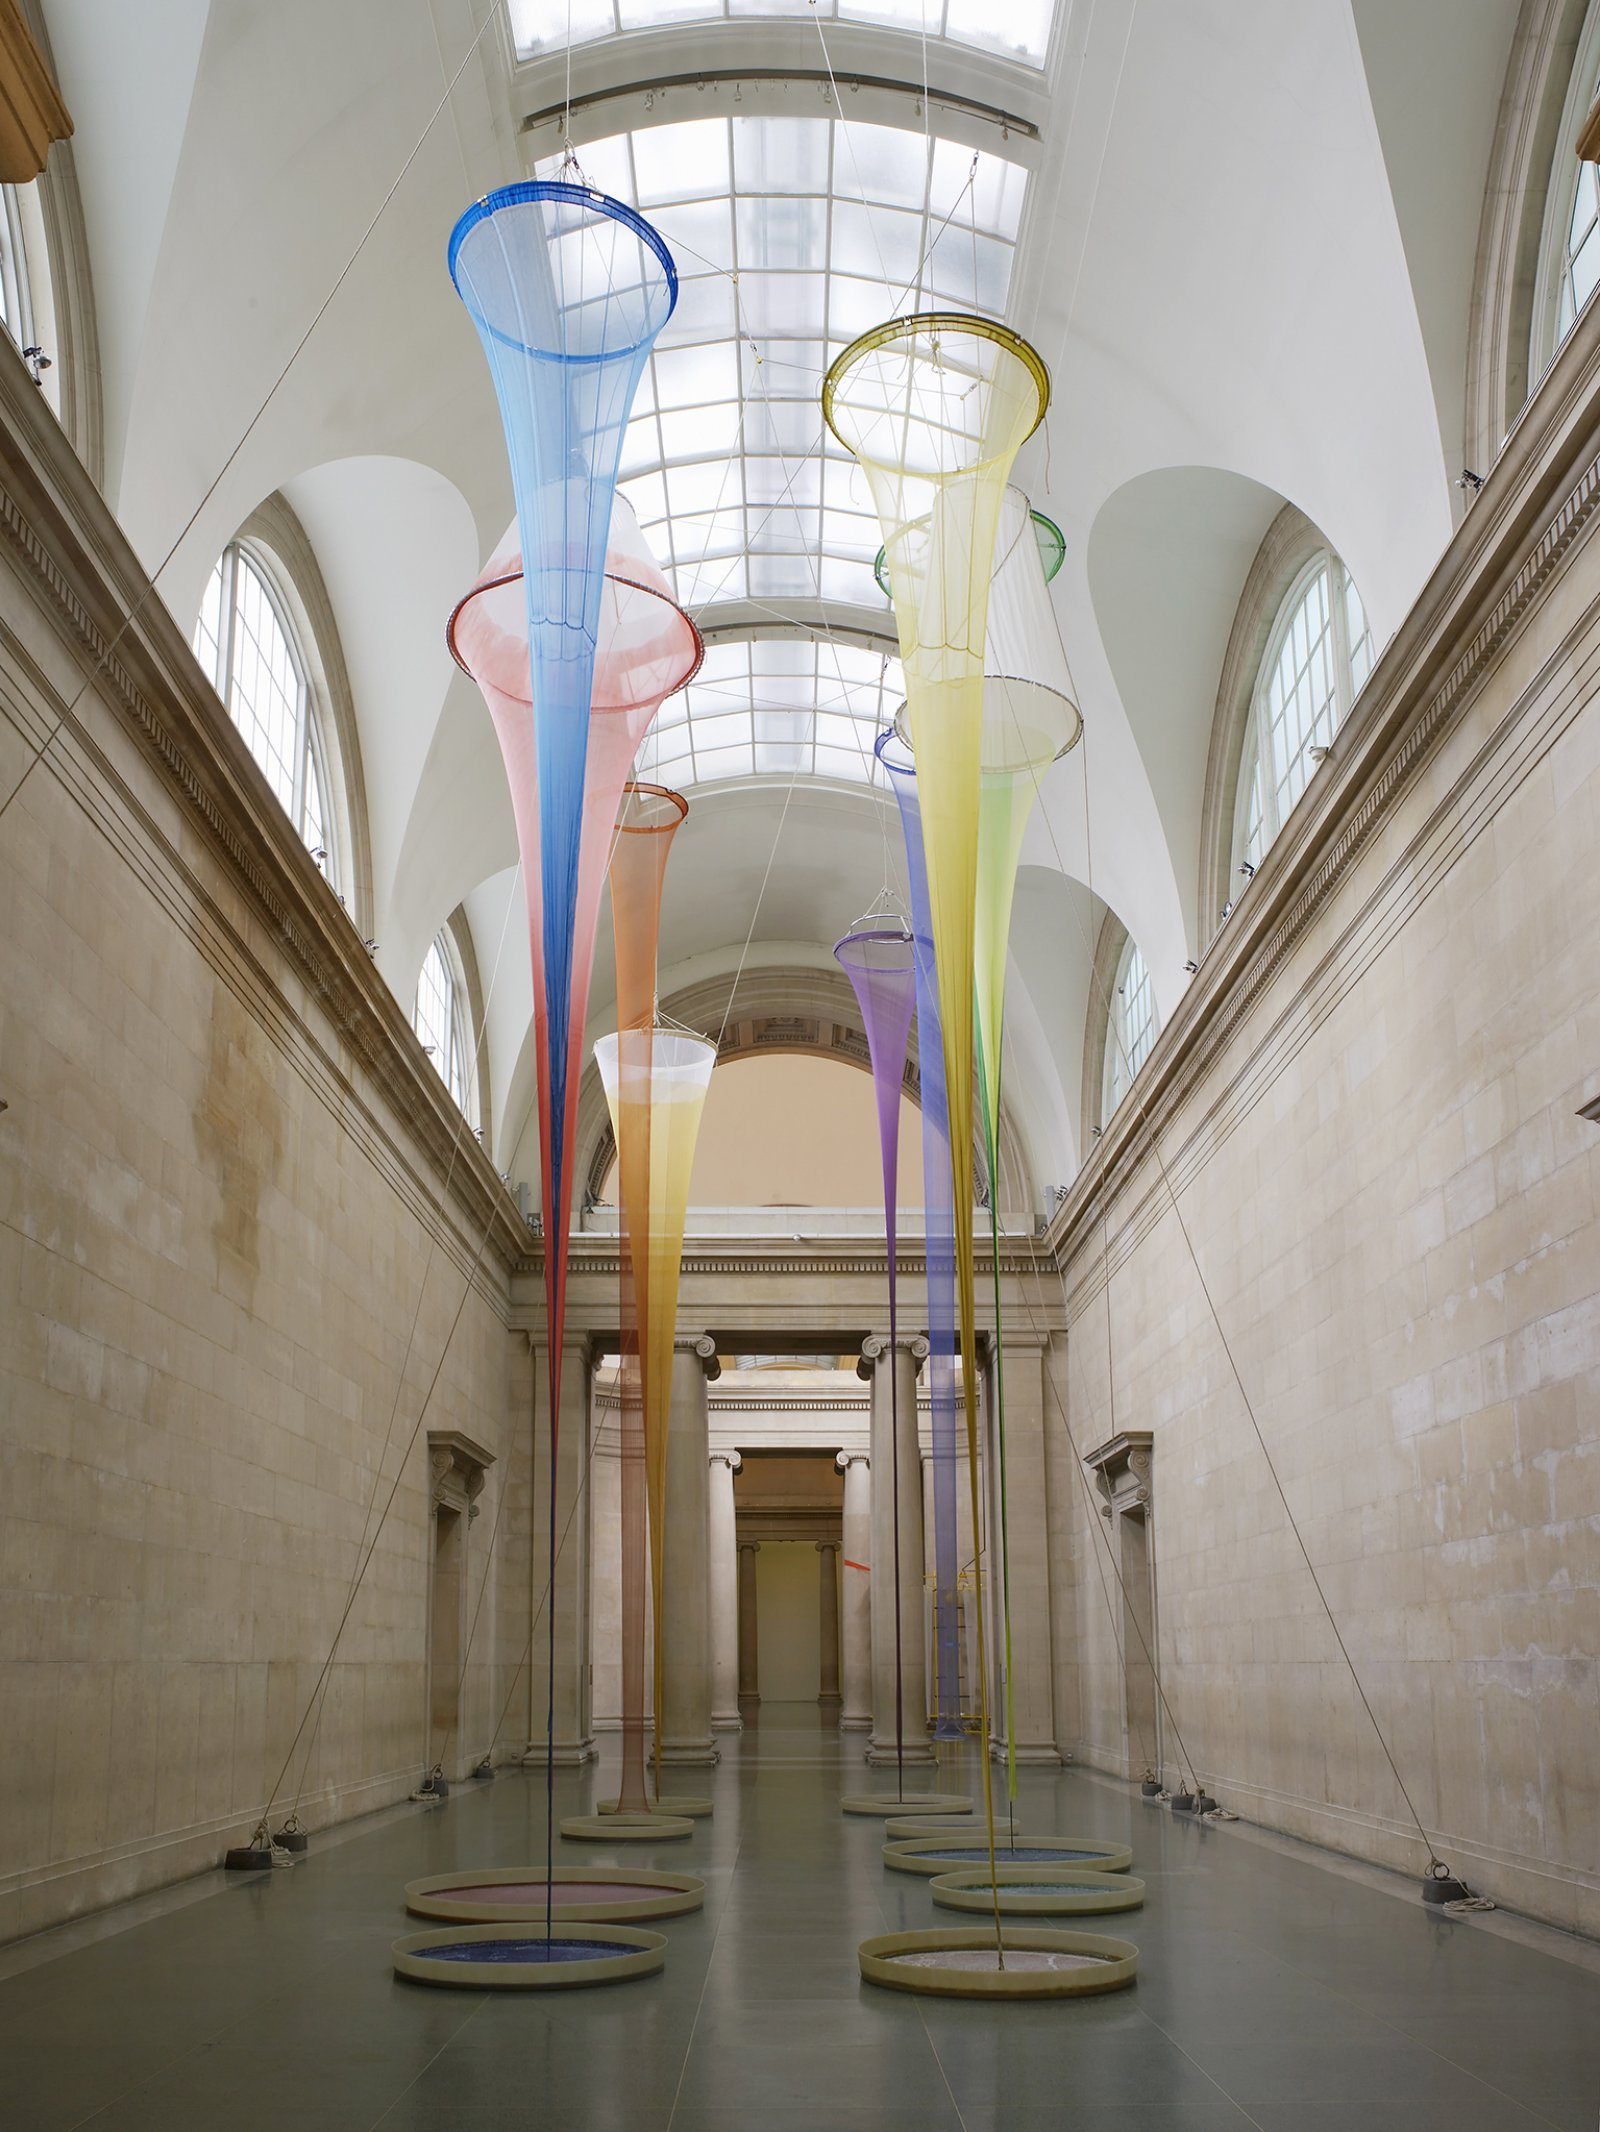 Christina Mackie, Filters, 2015, mixed media, dimensions variable. Installation view, The filters, Tate Britain, London, UK, 2015 by Christina Mackie